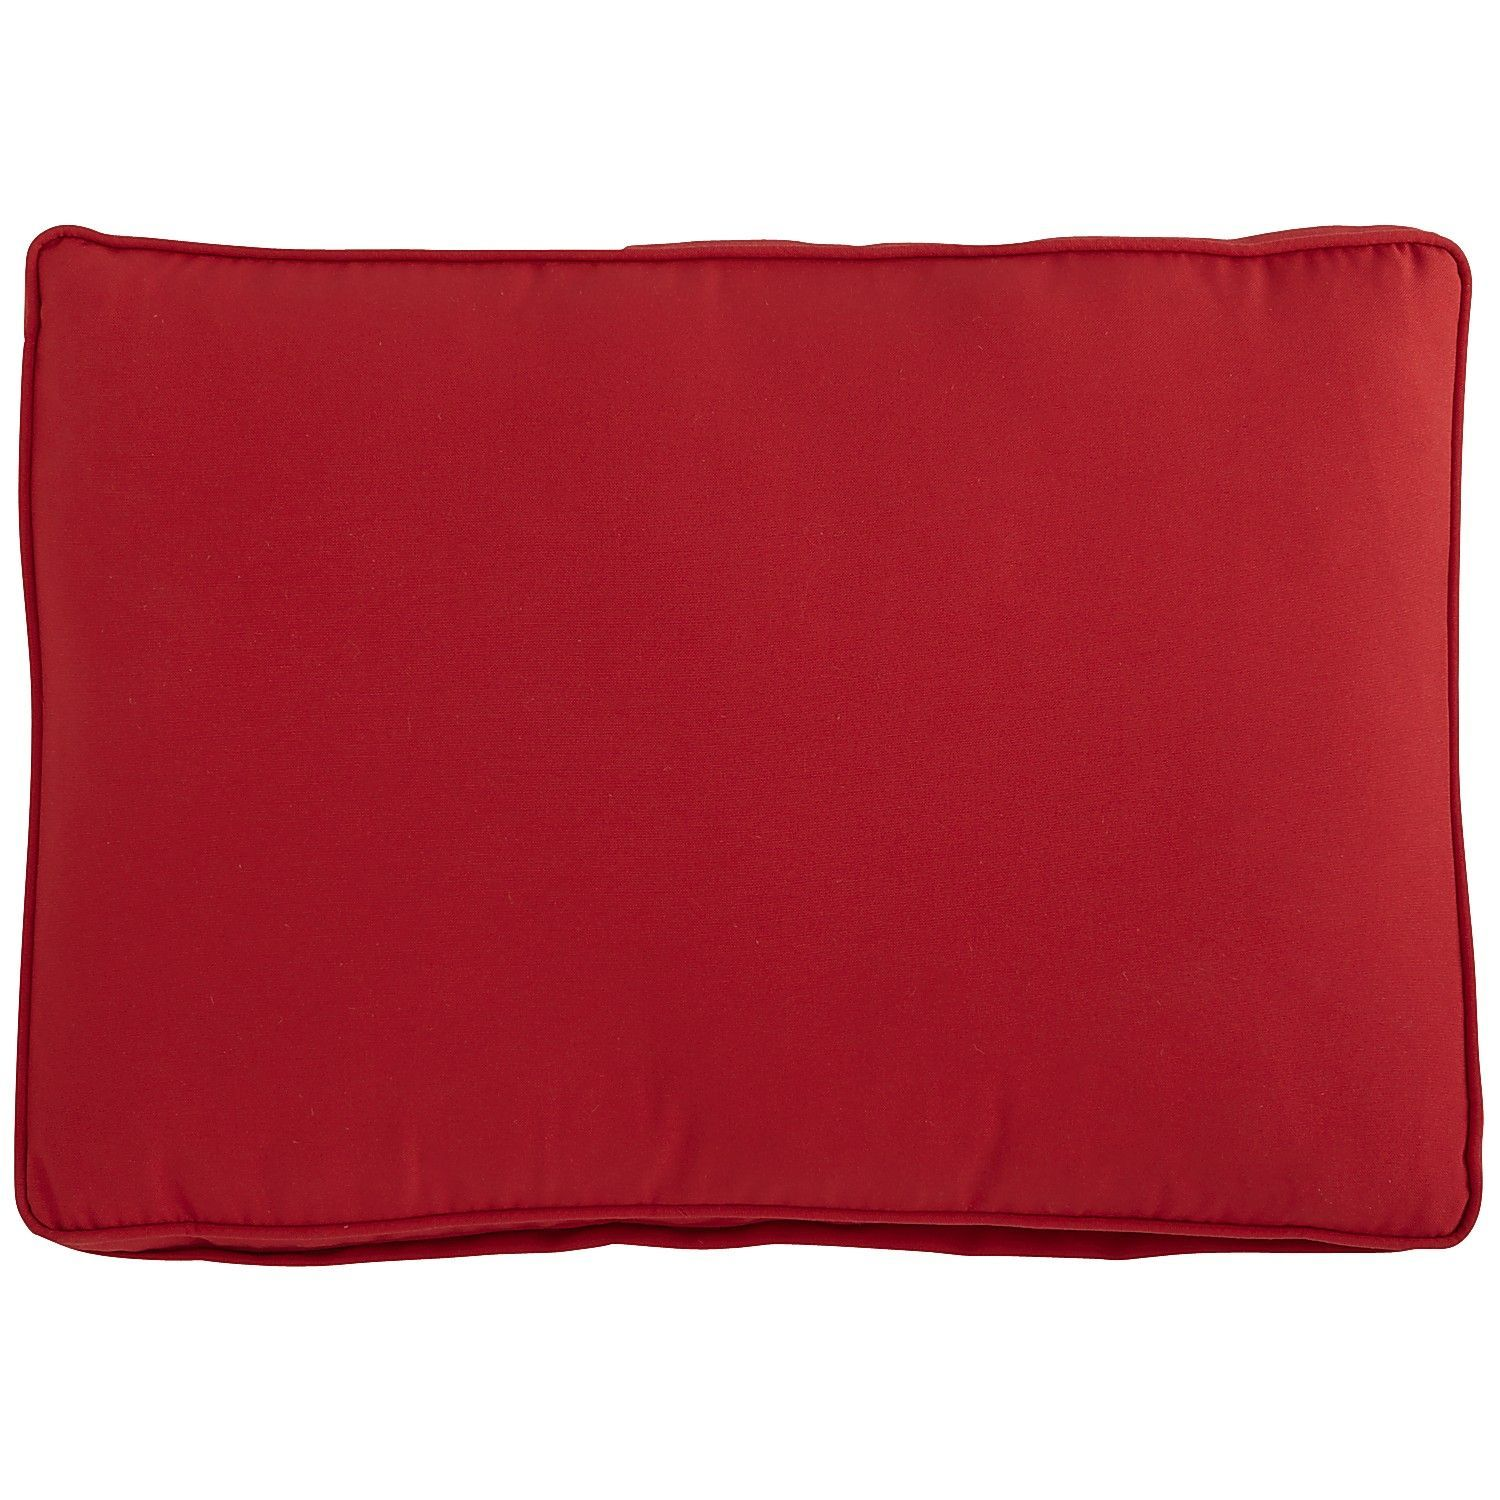 Echo Beach Back Cushion - Tomato